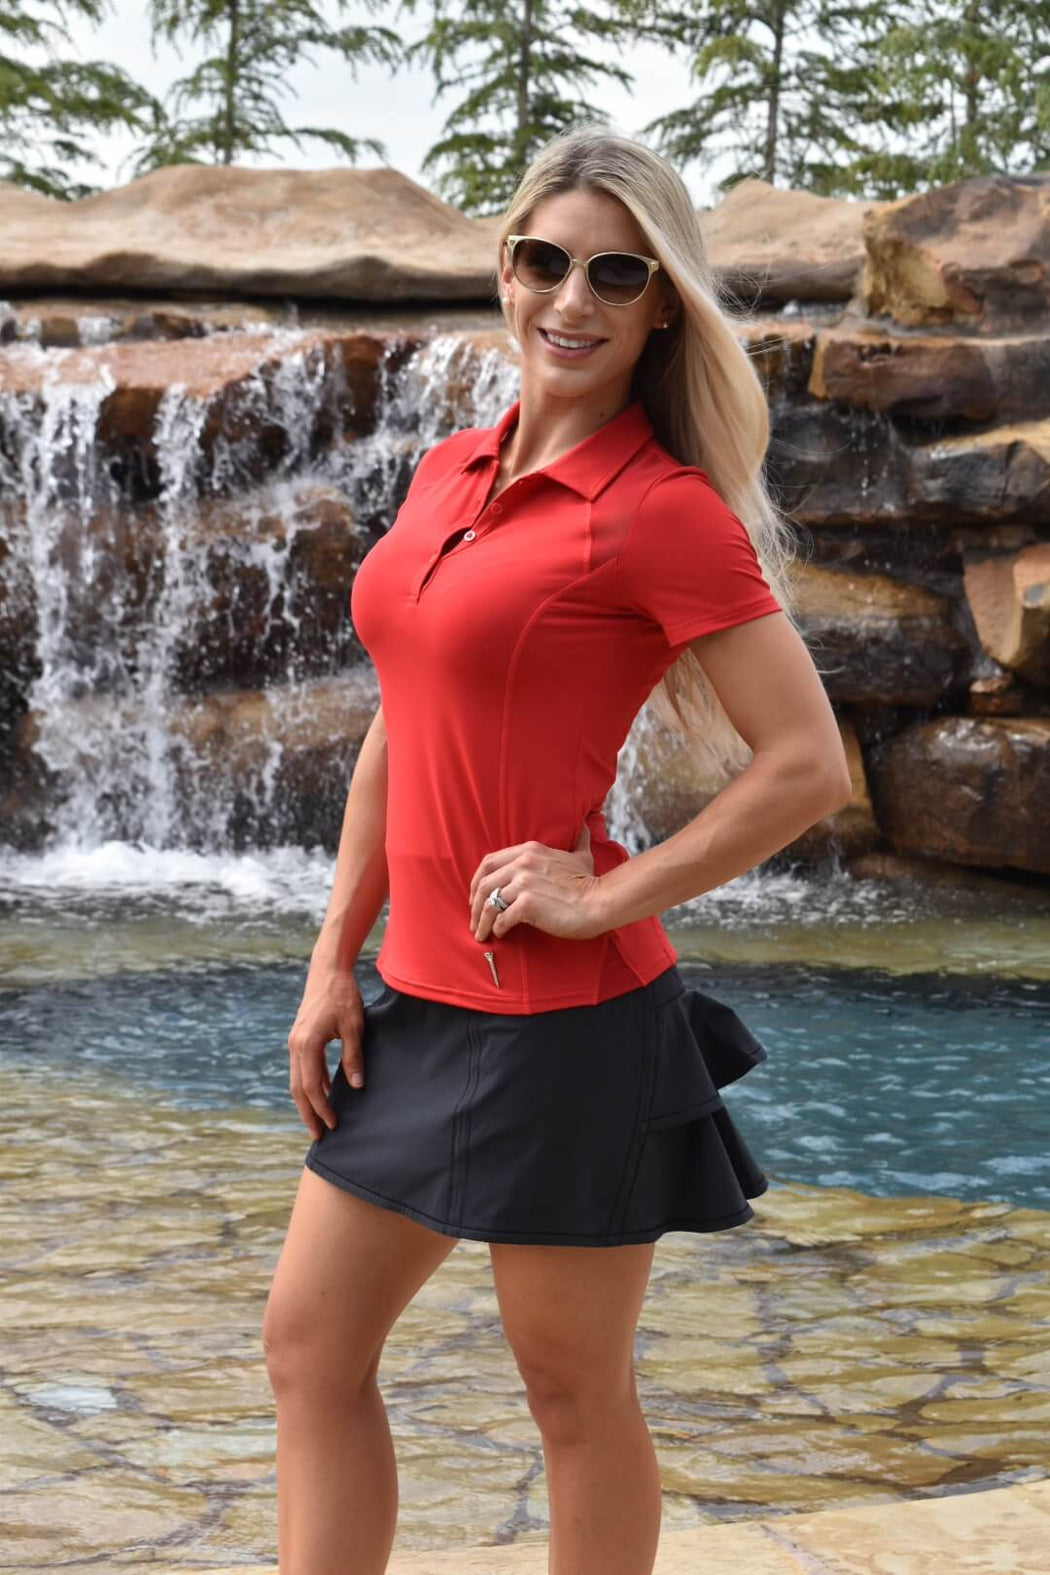 NEW! Double Ruffle Golf Skirt - Black - FlirTee Golf